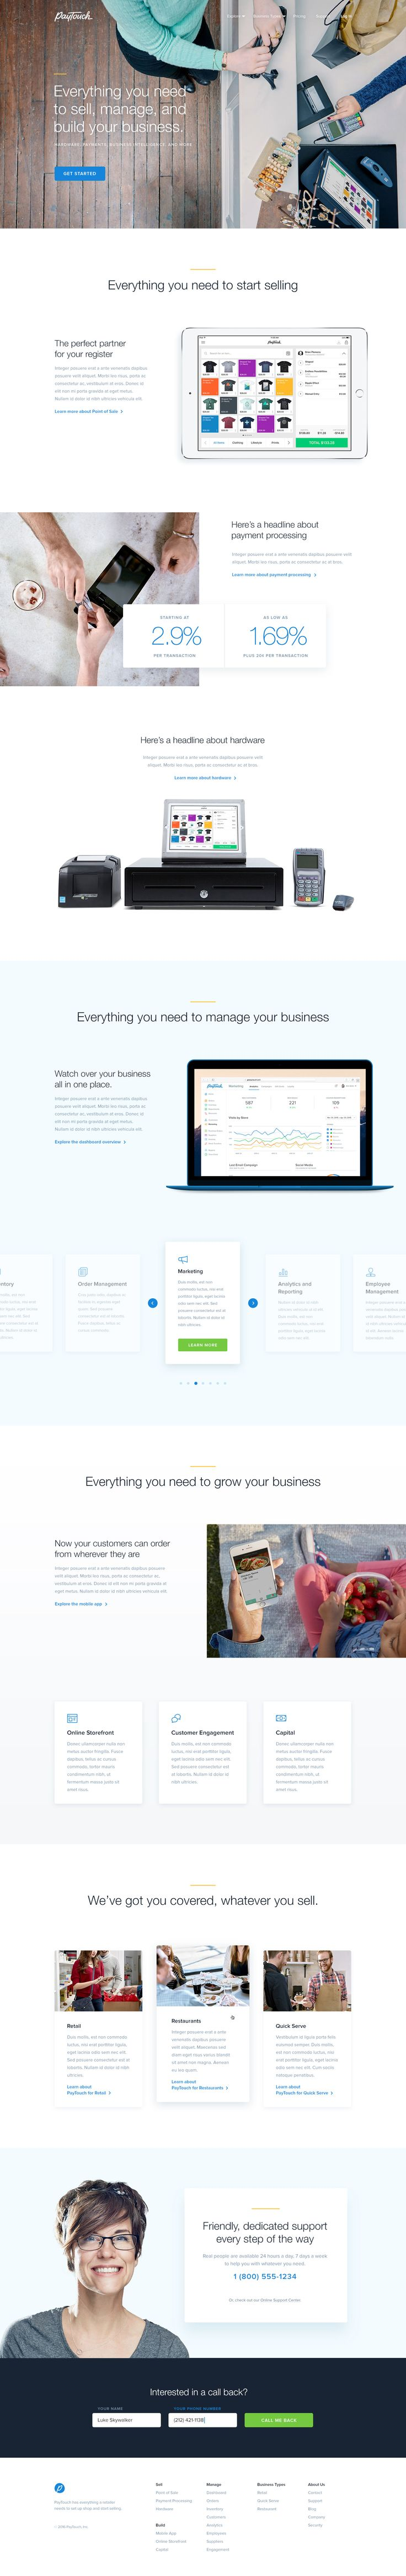 Paytouch homepage full